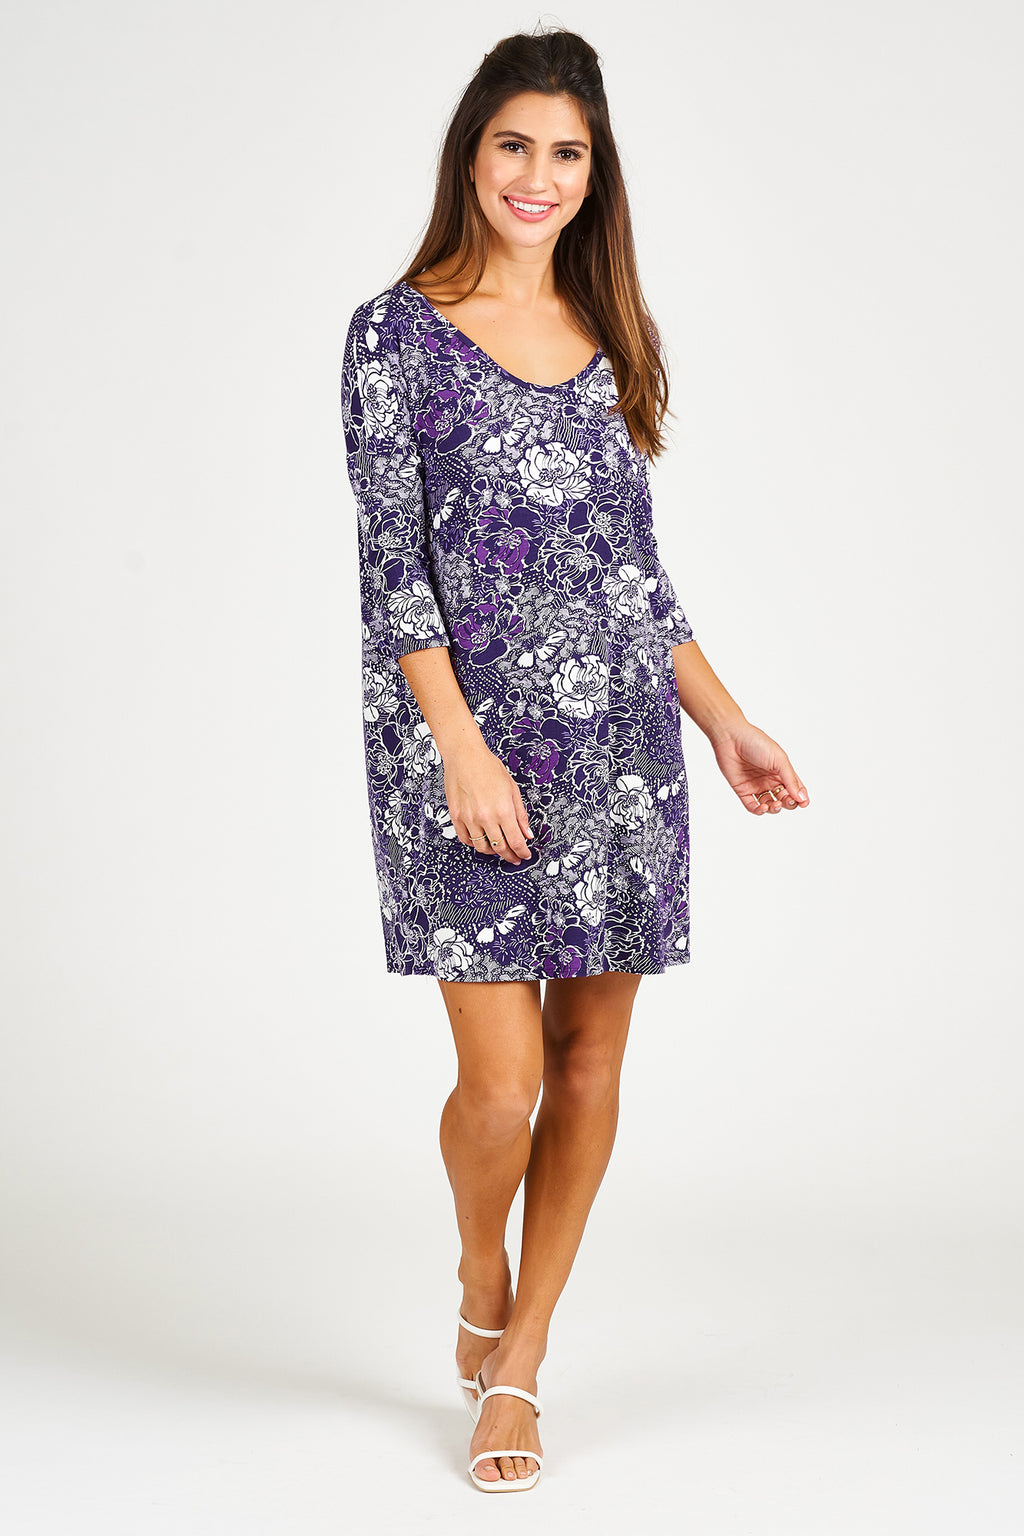 Relaxed T shirt Dress